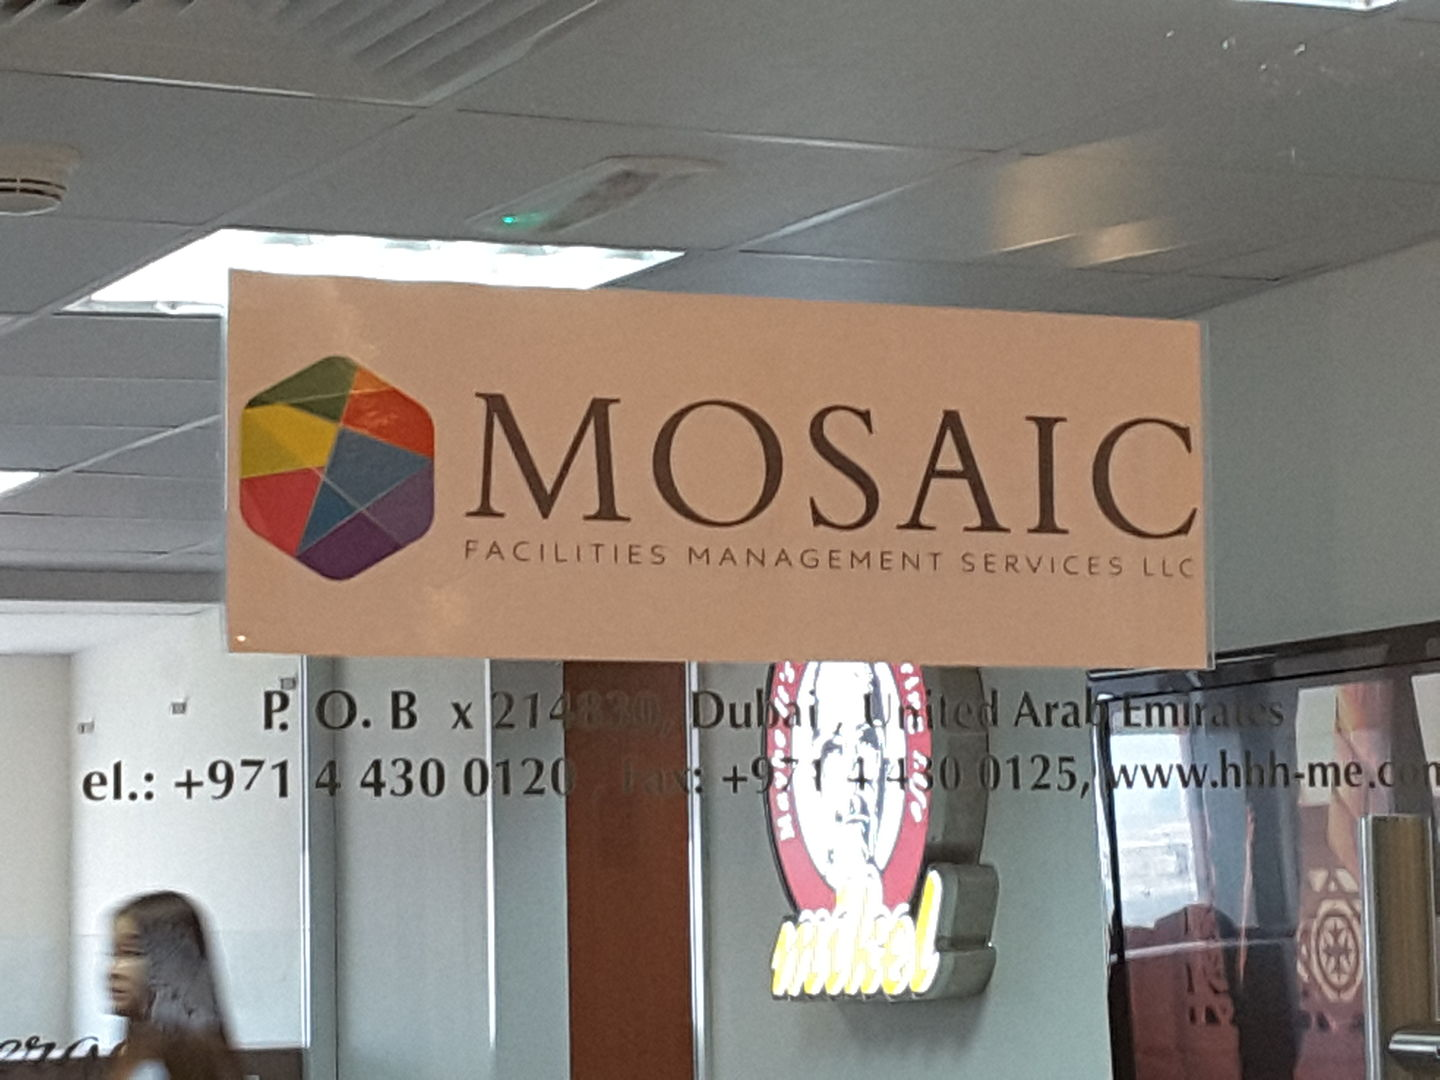 HiDubai-business-mosaic-facilites-management-services-housing-real-estate-property-management-dubai-media-city-al-sufouh-2-dubai